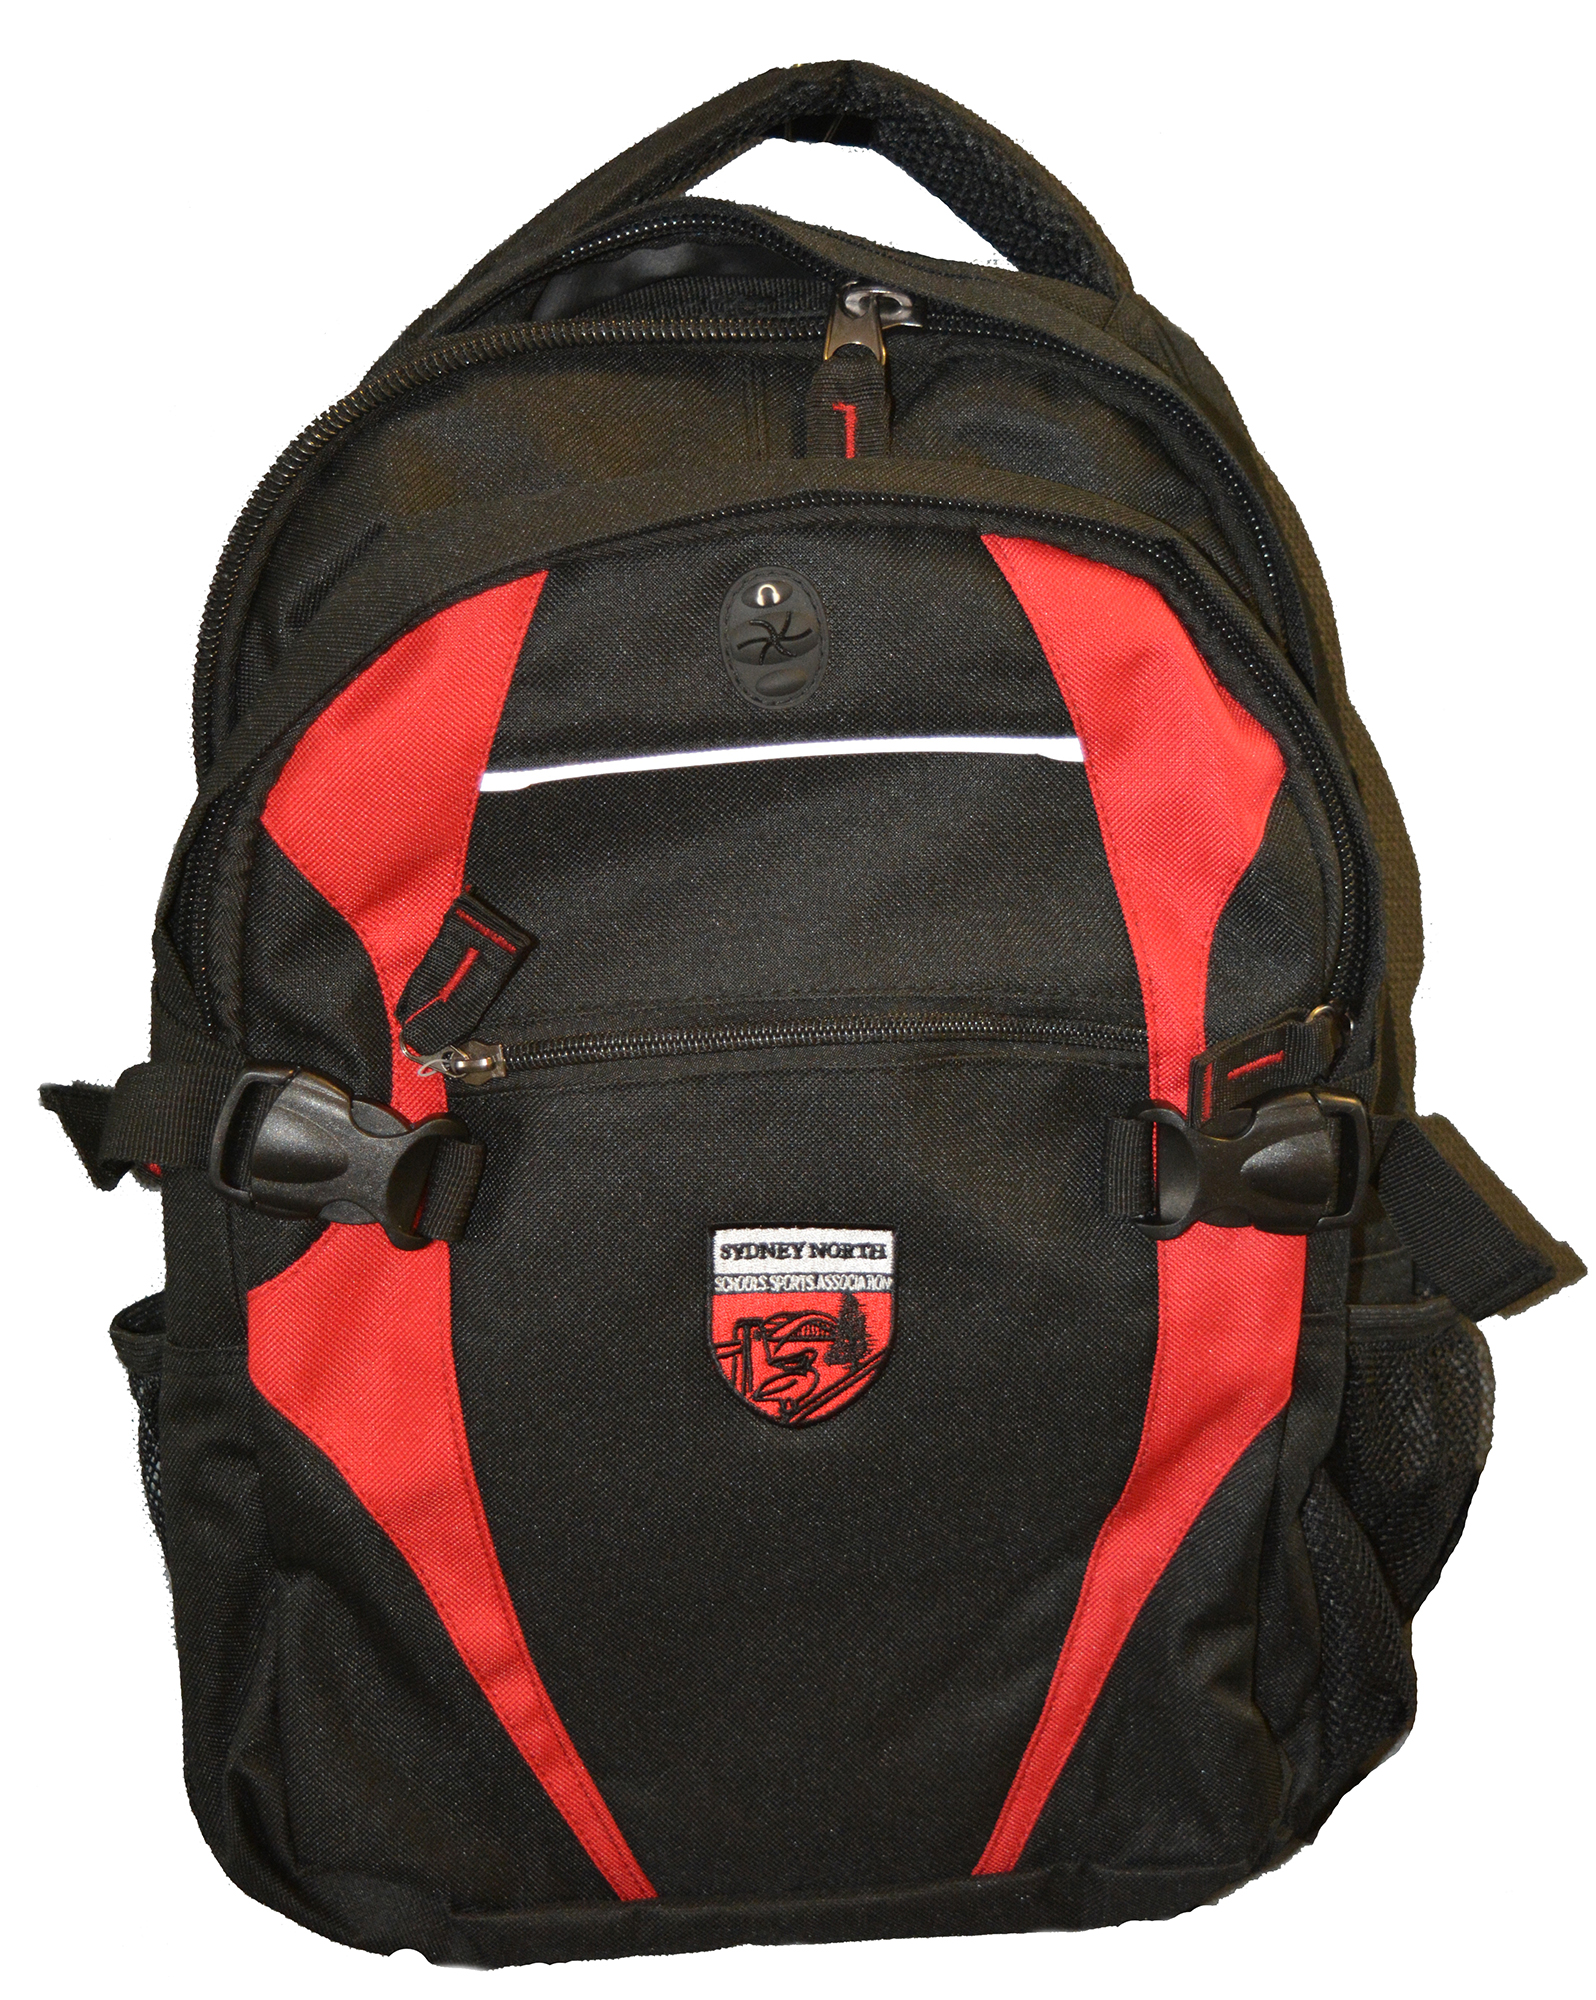 SNSSA Back Pack